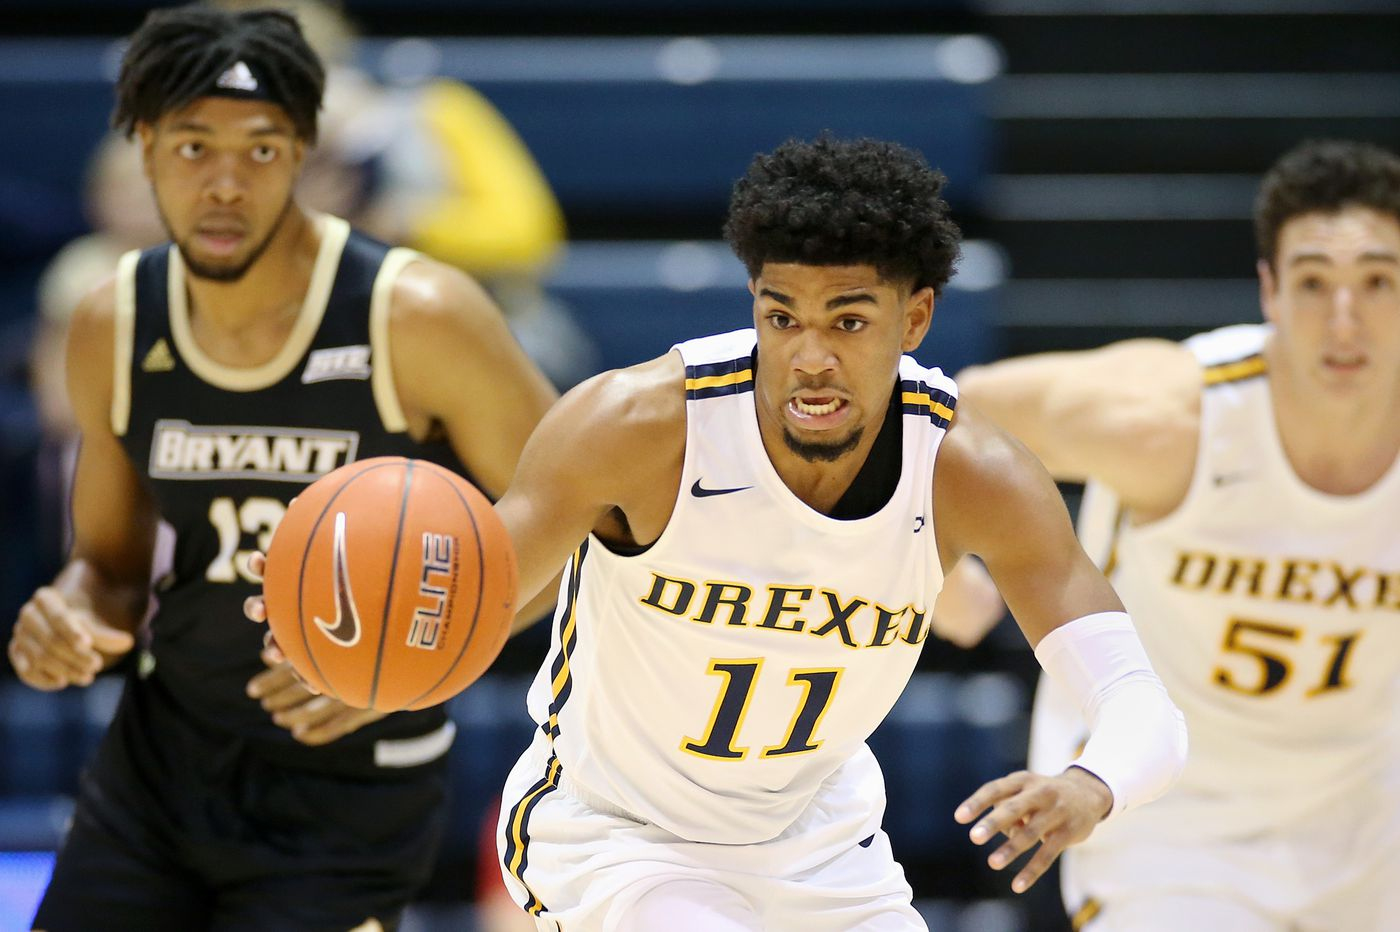 Towson 76, Drexel 69: Stats, highlights, and reaction from the Dragons' loss